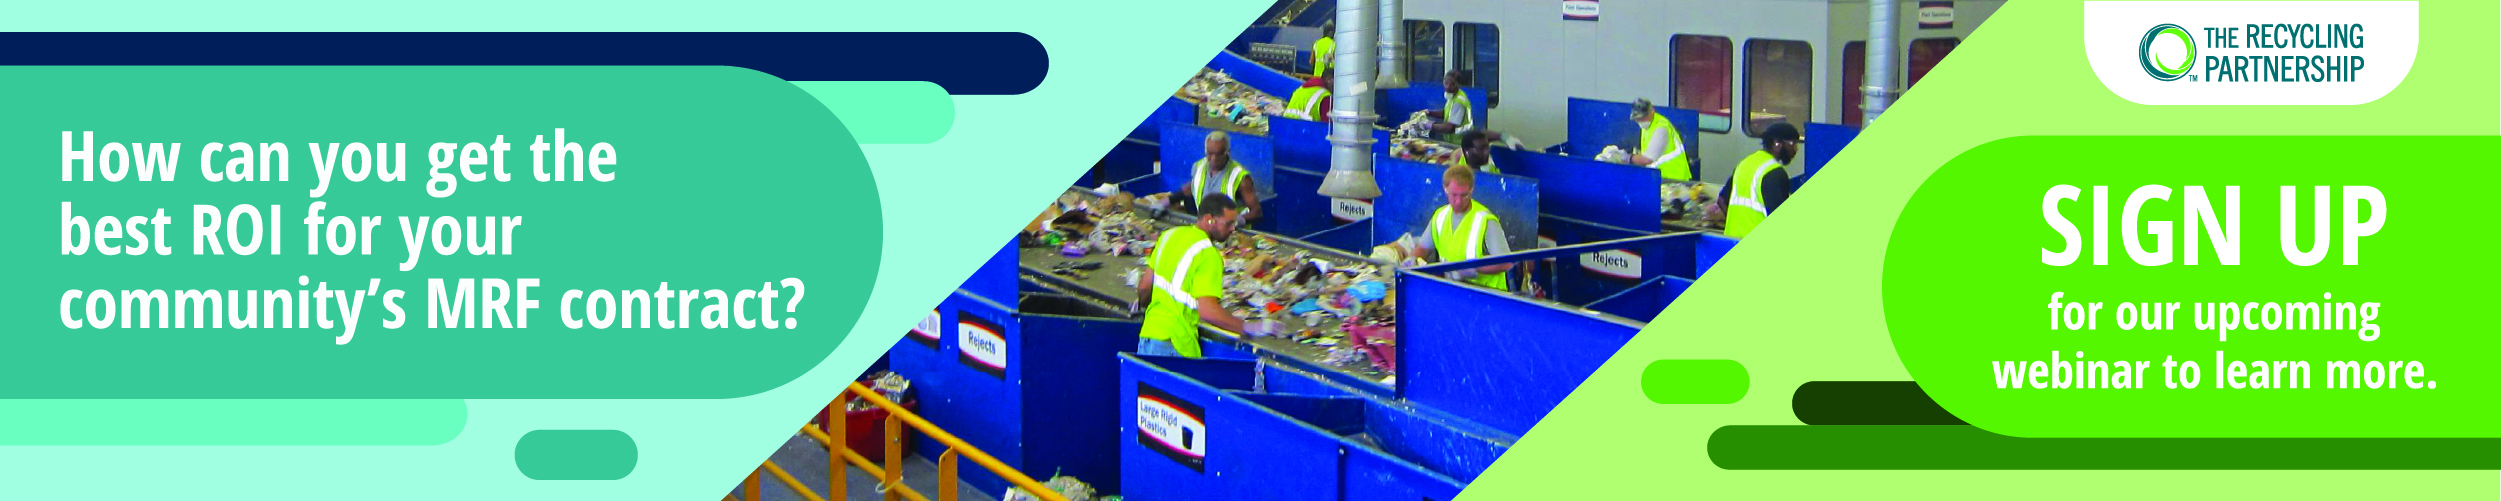 The Recycling Partnership - MRF Contracts